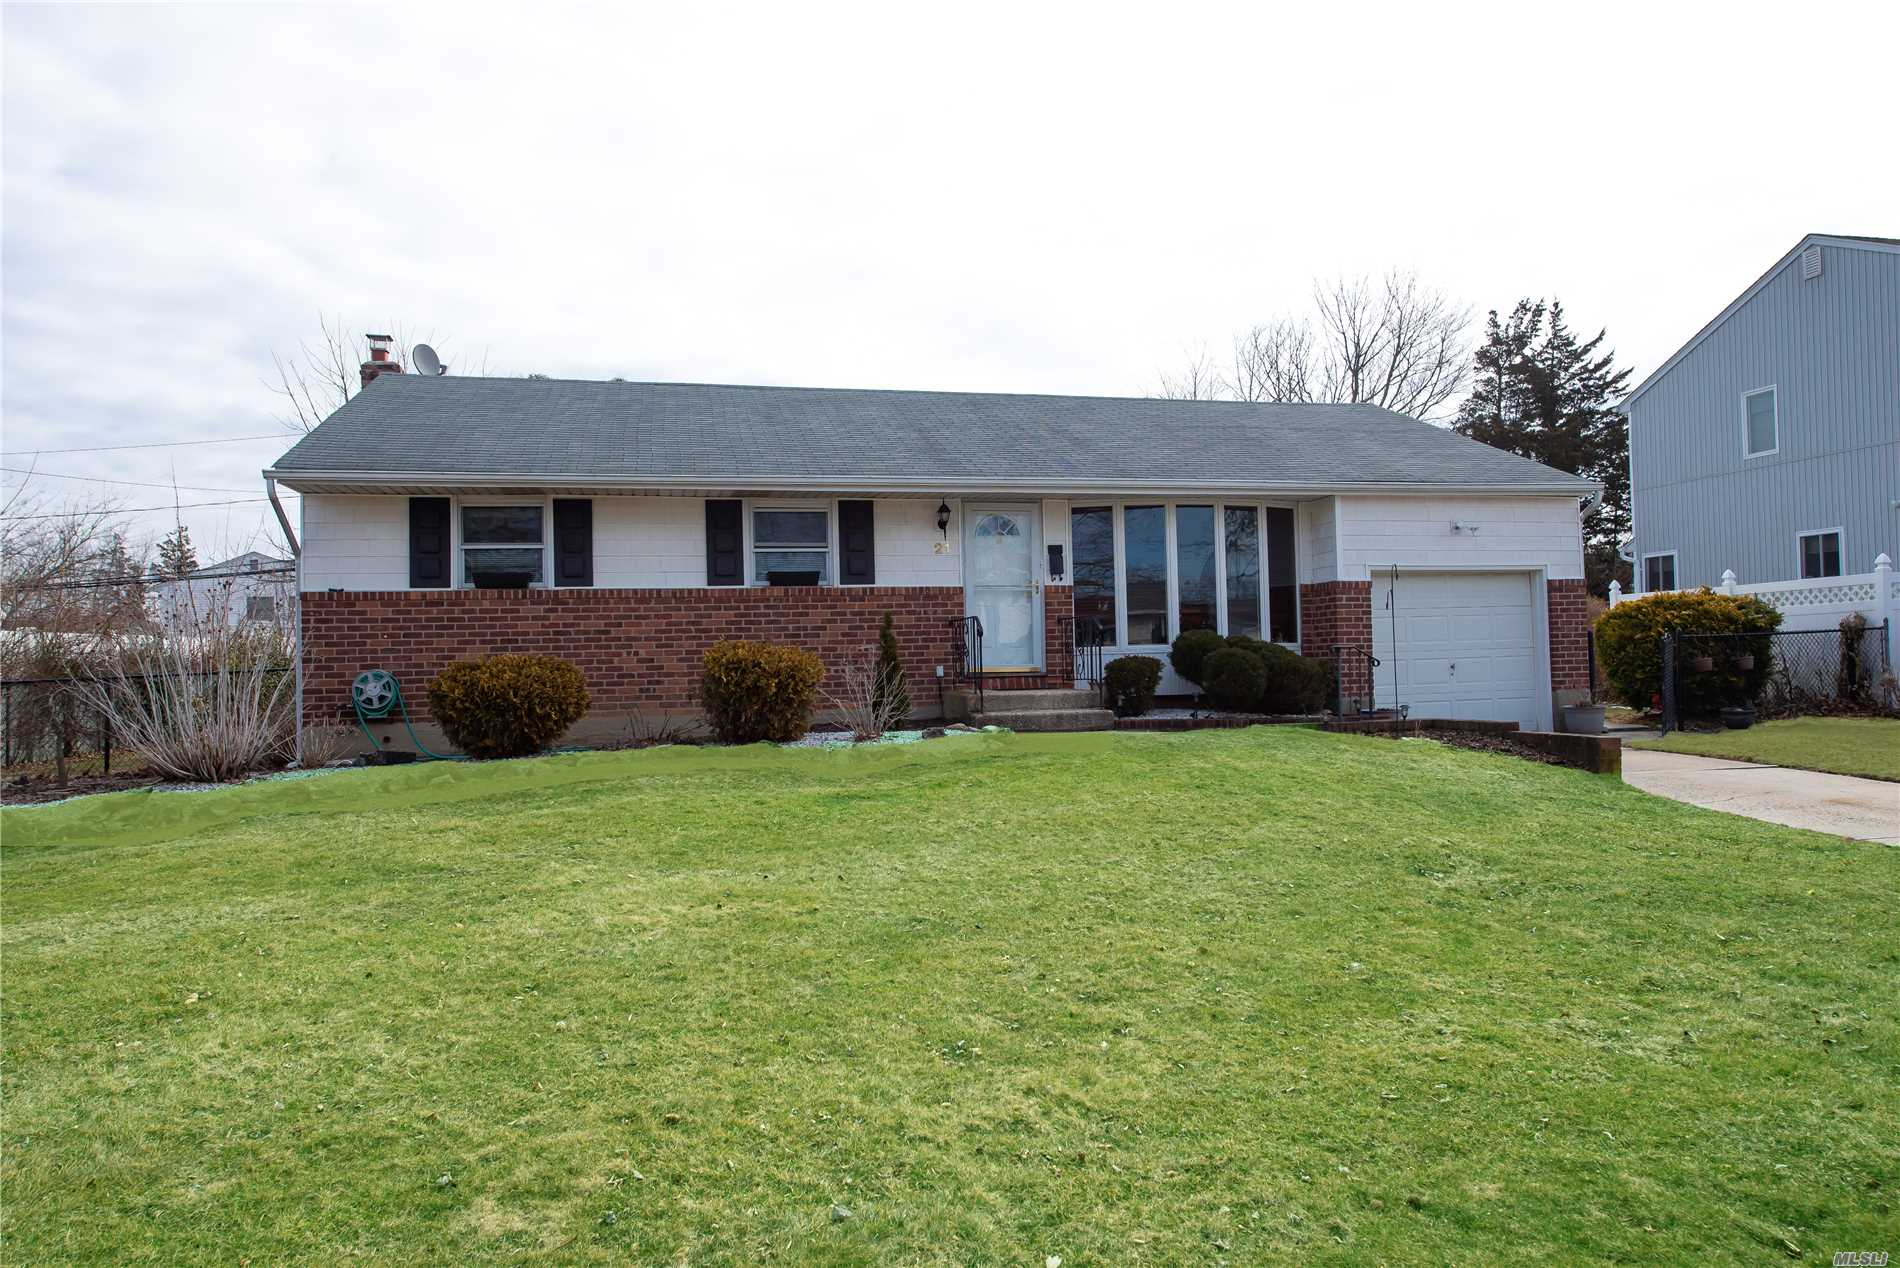 Spectacular 4 Br Ranch in the Commack School District with in-ground pool in a quiet residential neighborhood and a full basement.